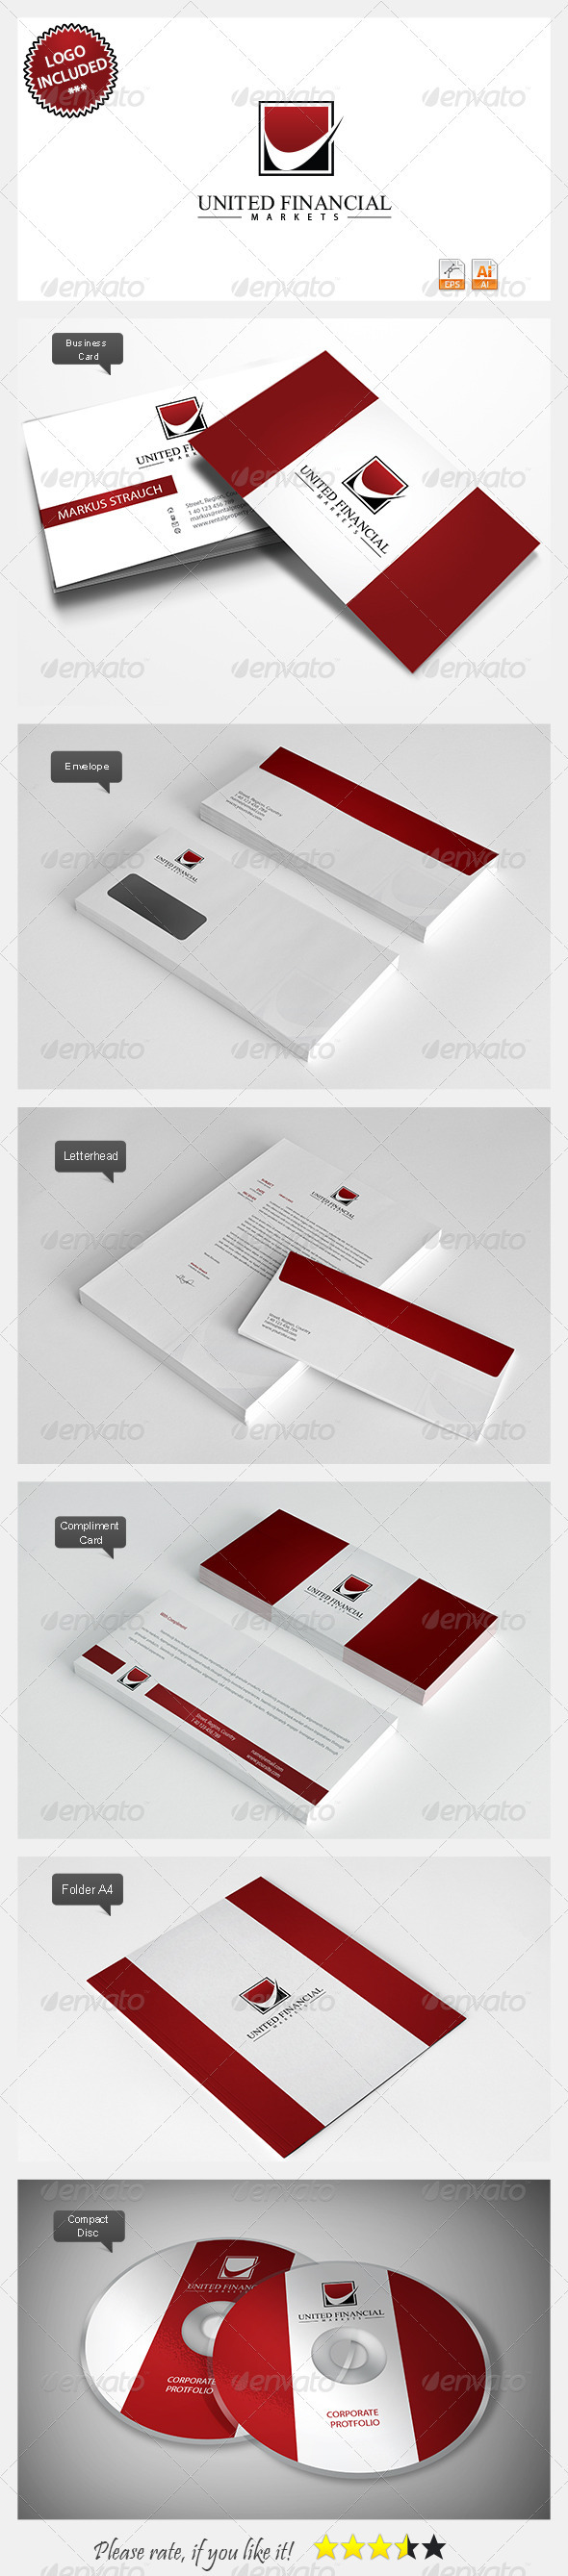 United Financial Logo & Identity - Stationery Print Templates